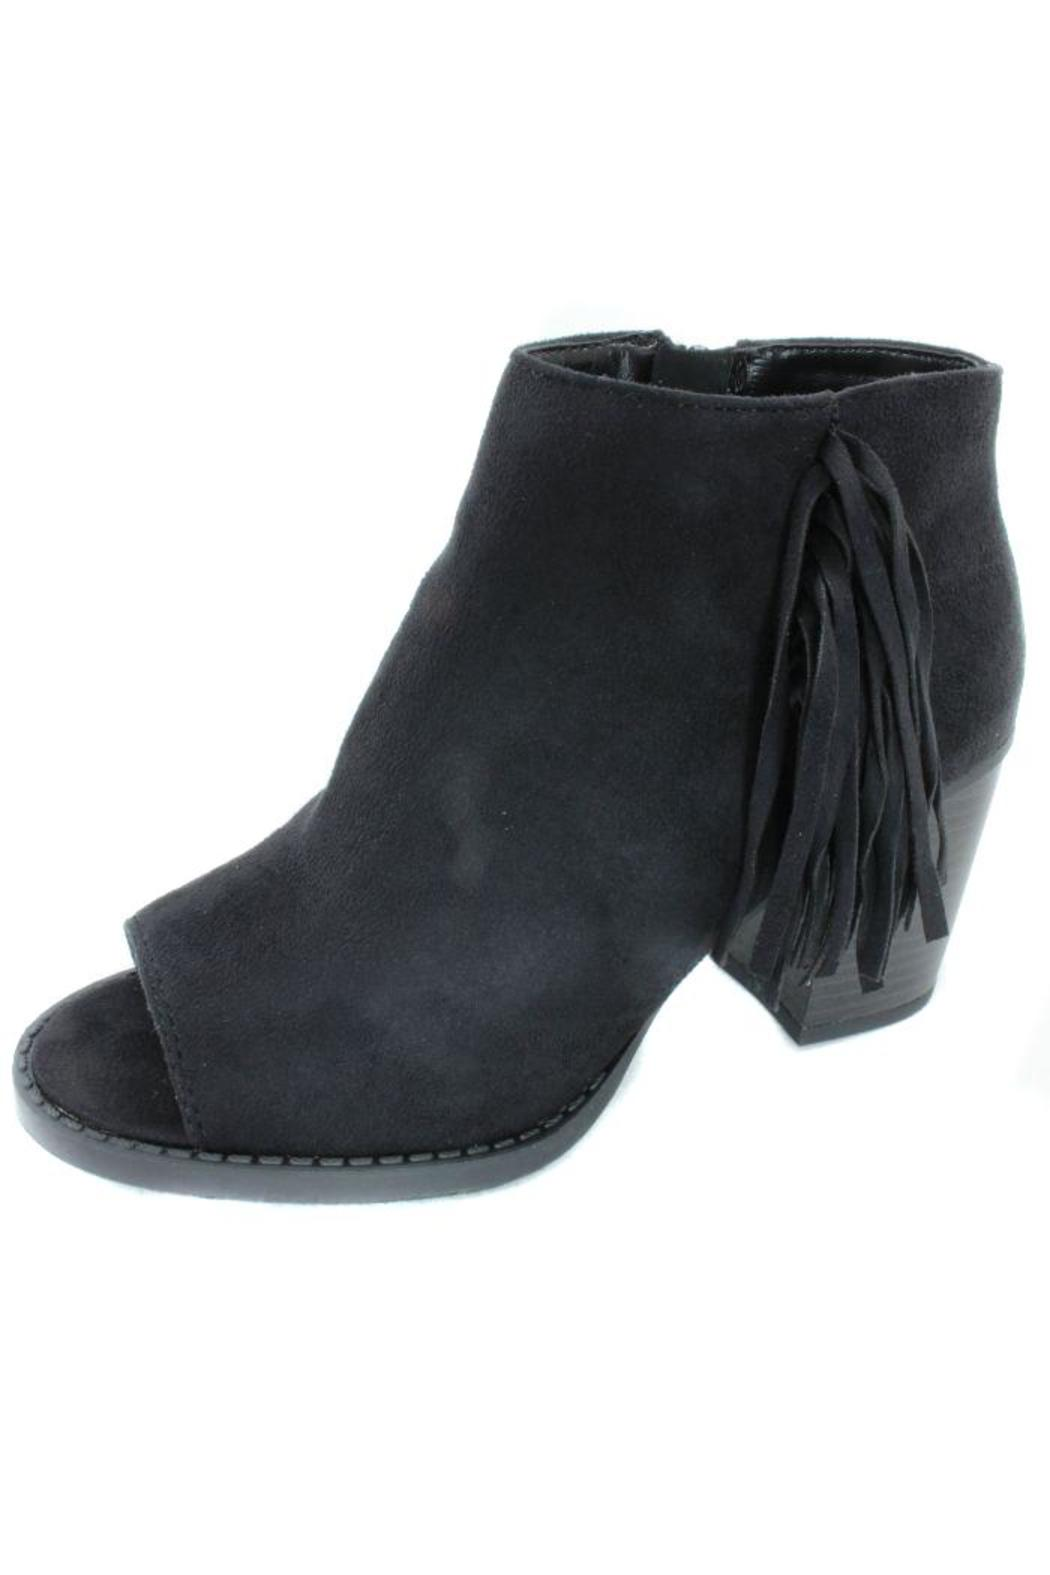 Soda Peep-Toe Fringe Bootie from New Jersey by Making Waves — Shoptiques f1cf6f090689